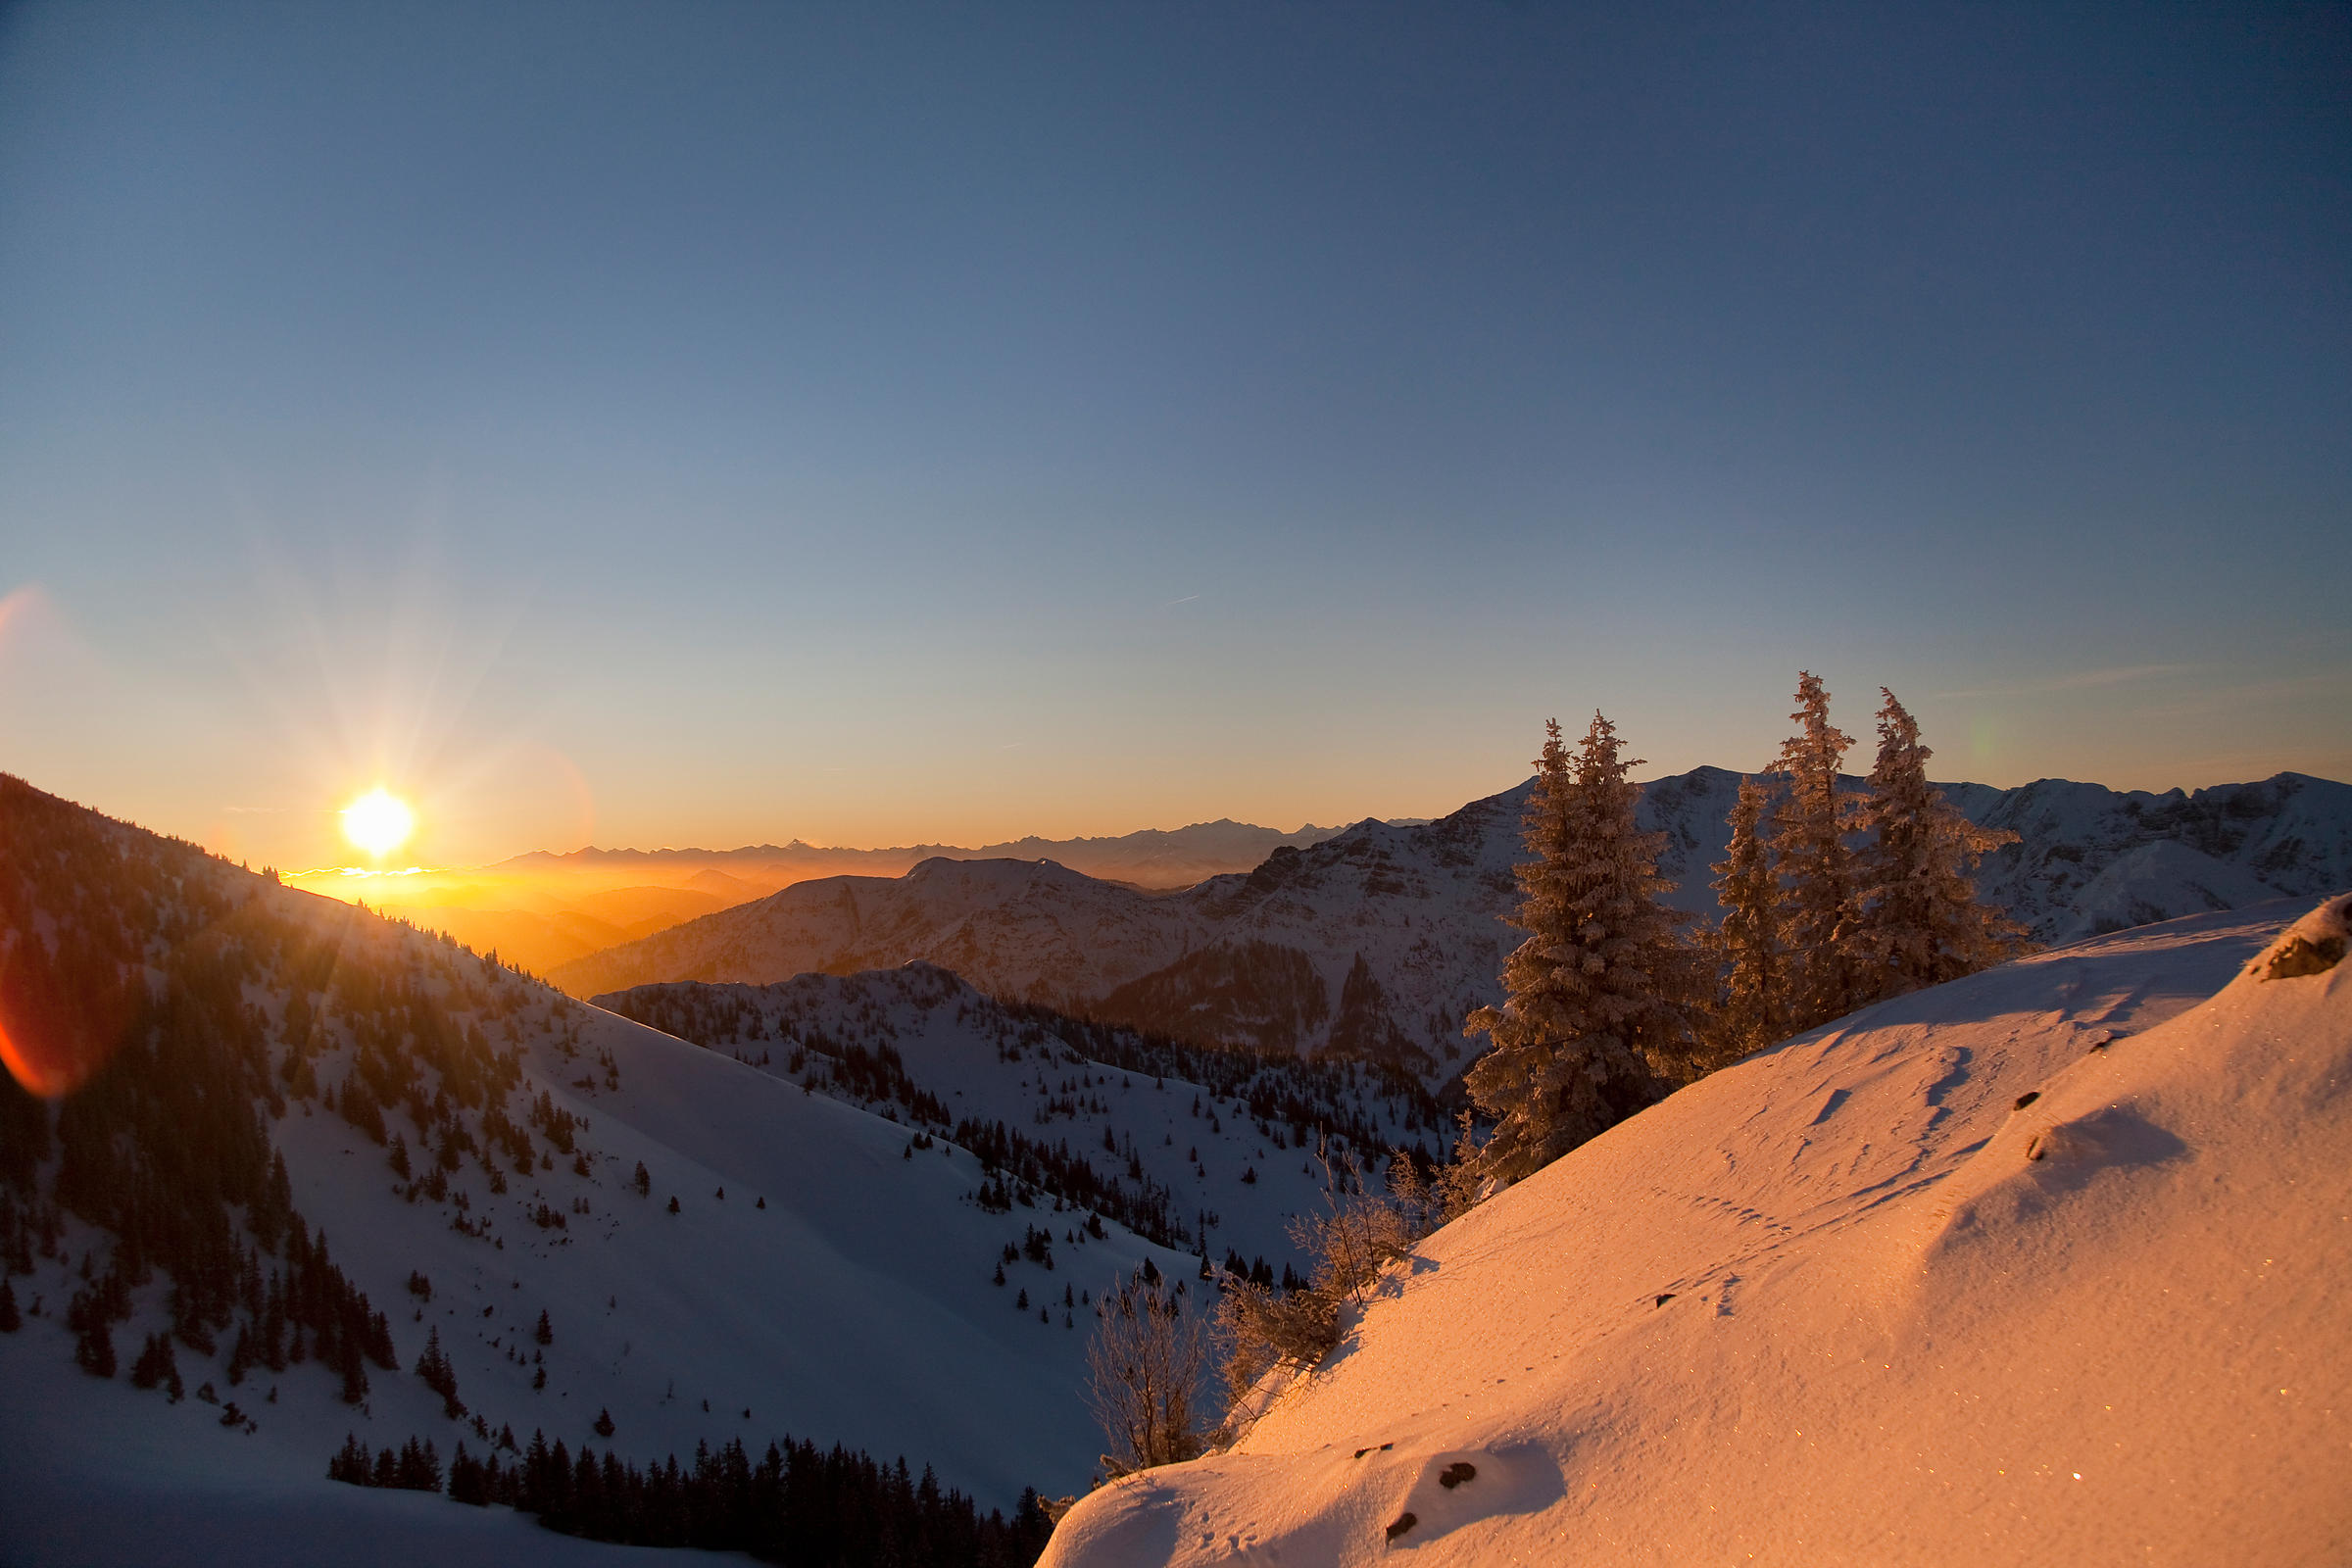 Sun setting over snowy landscape